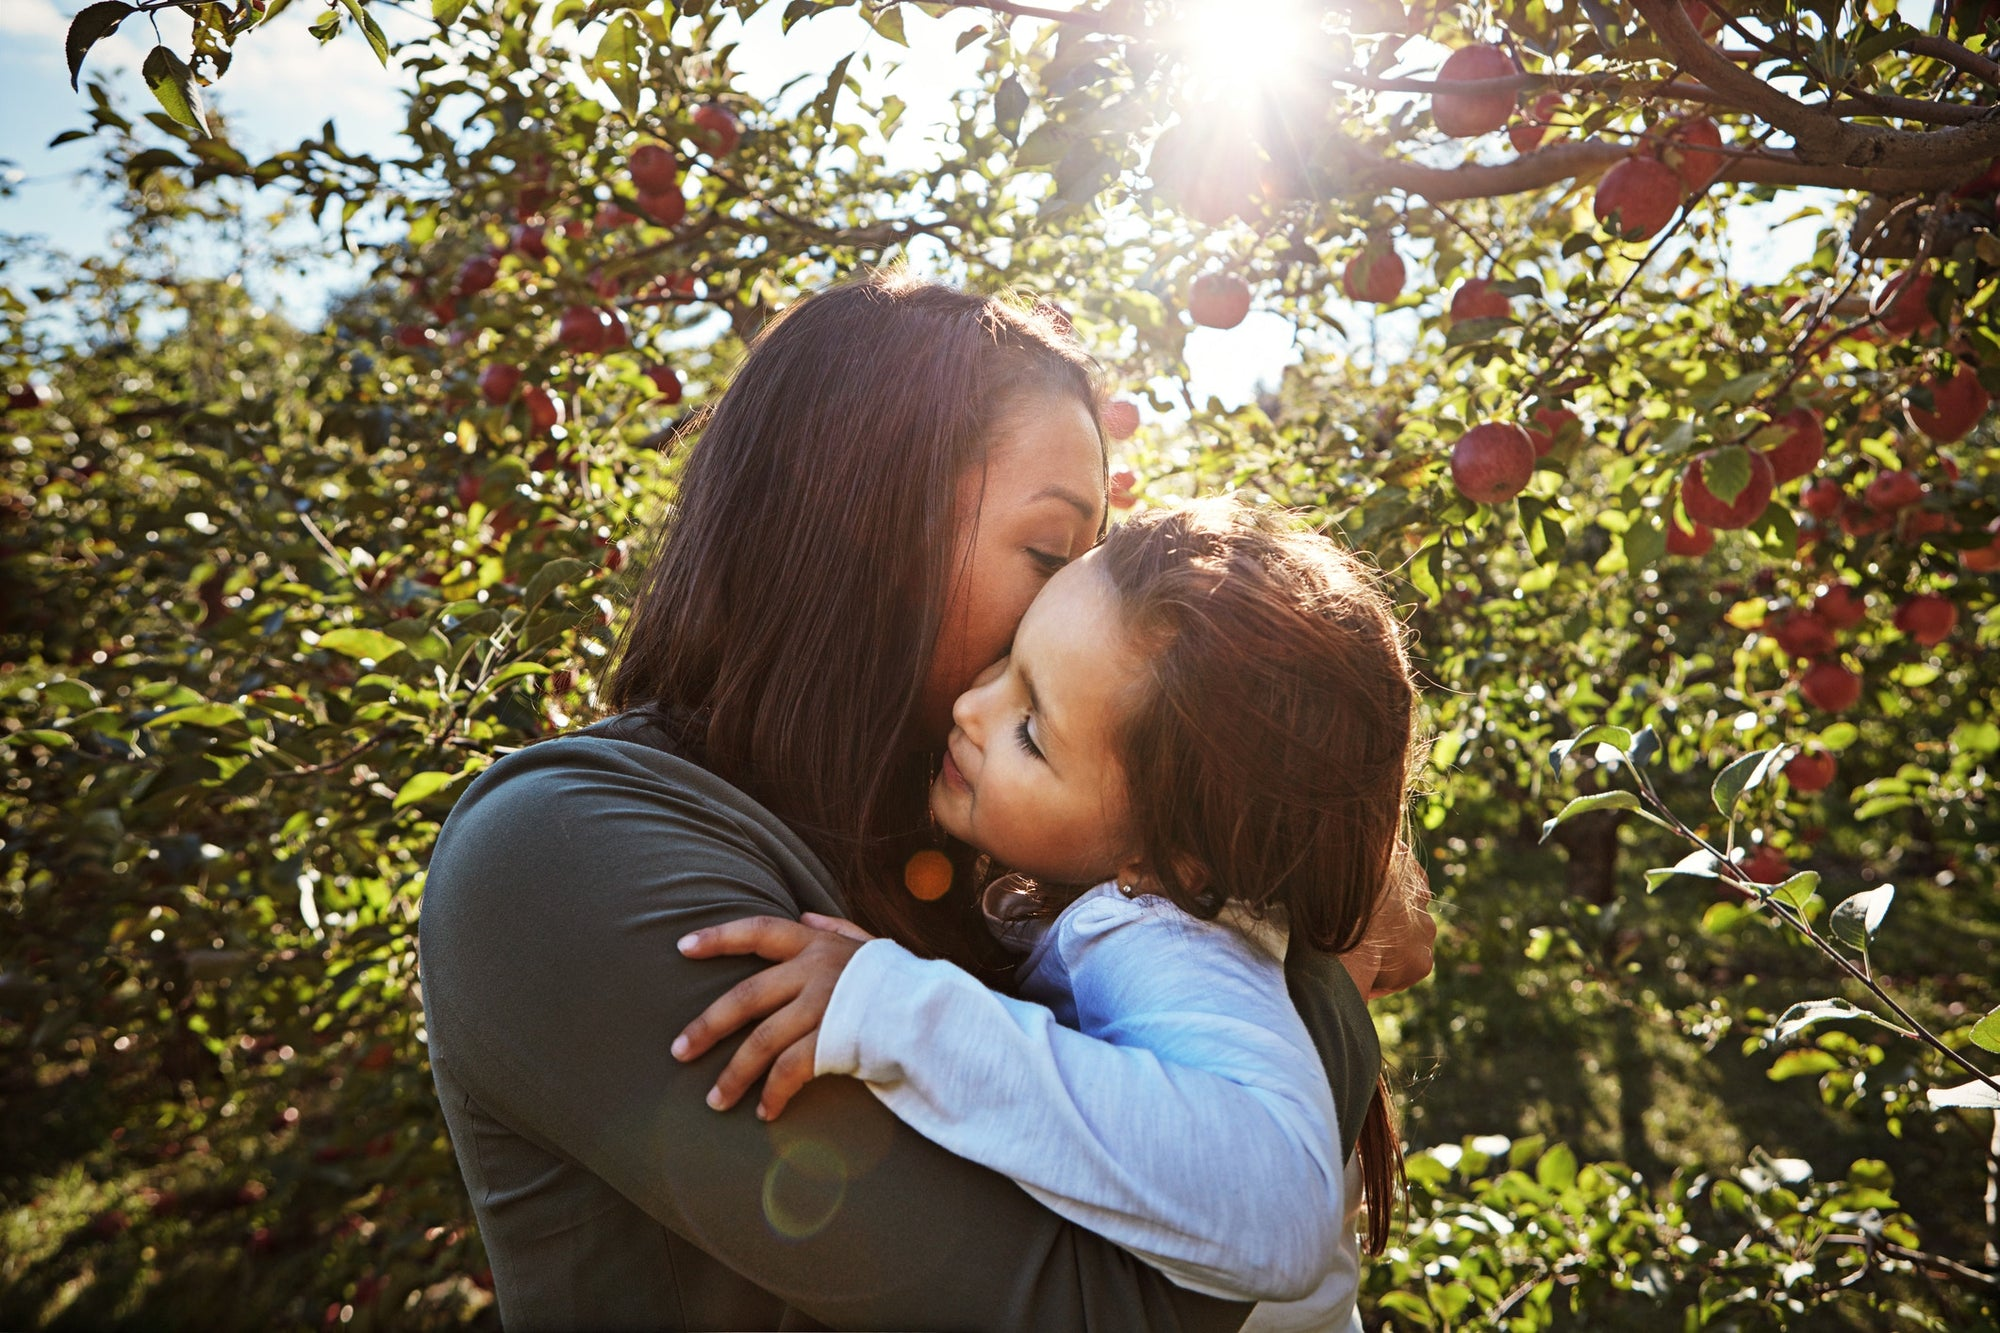 mother is kissing her daughter on the cheek, apple trees on the background